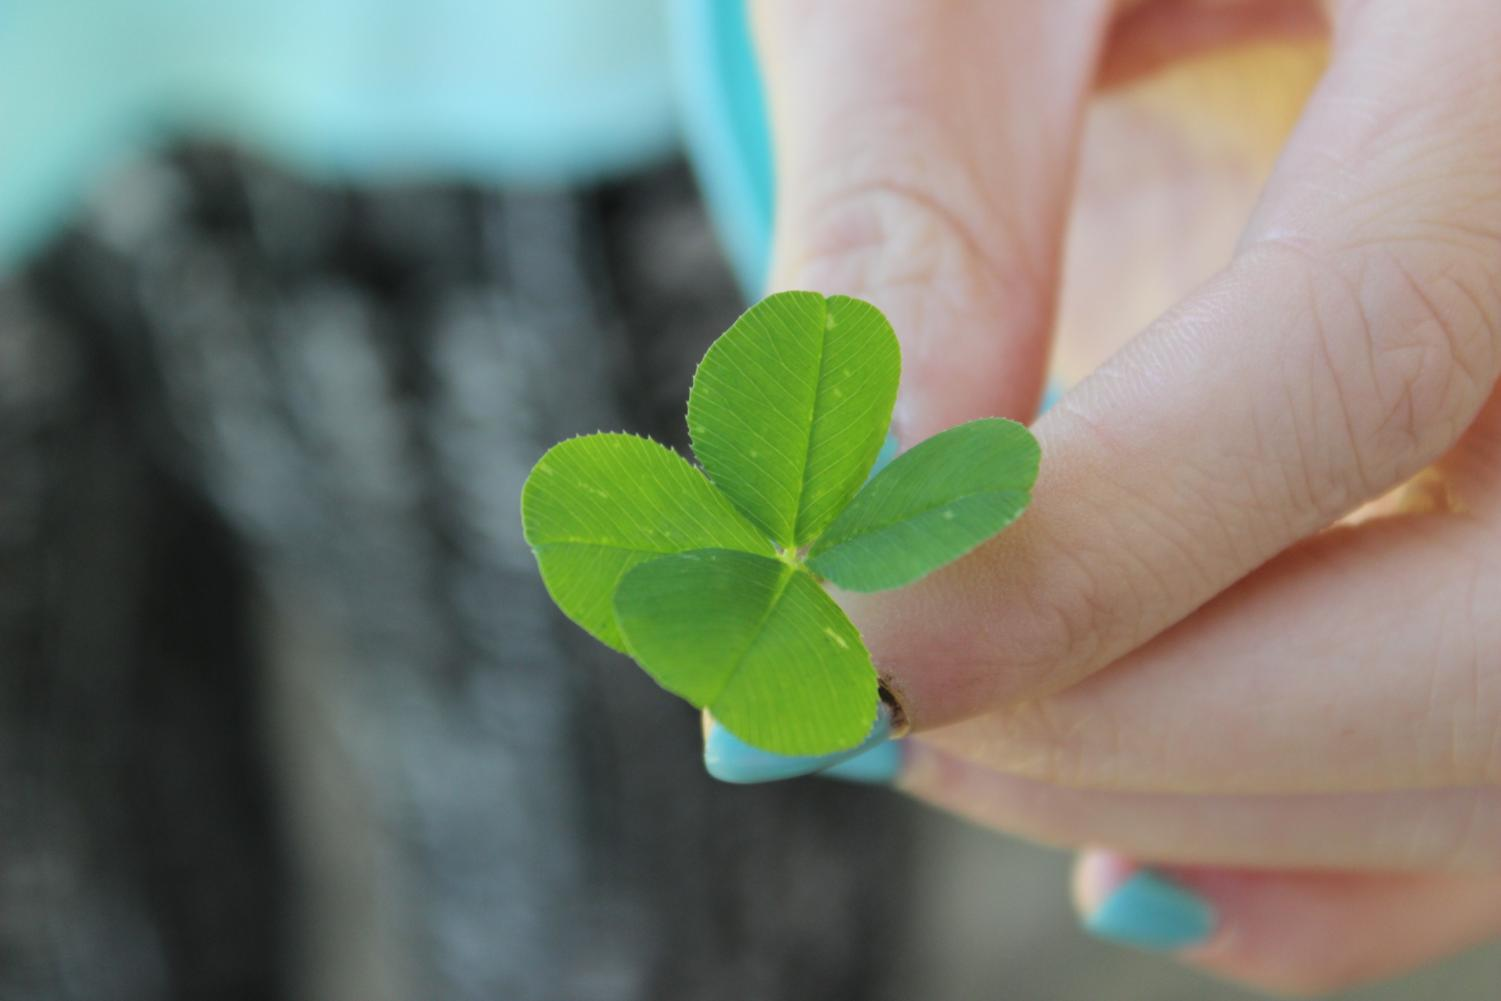 A four-leaf clover is one of the most famous symbols of luck associated with St. Patrick's Day.